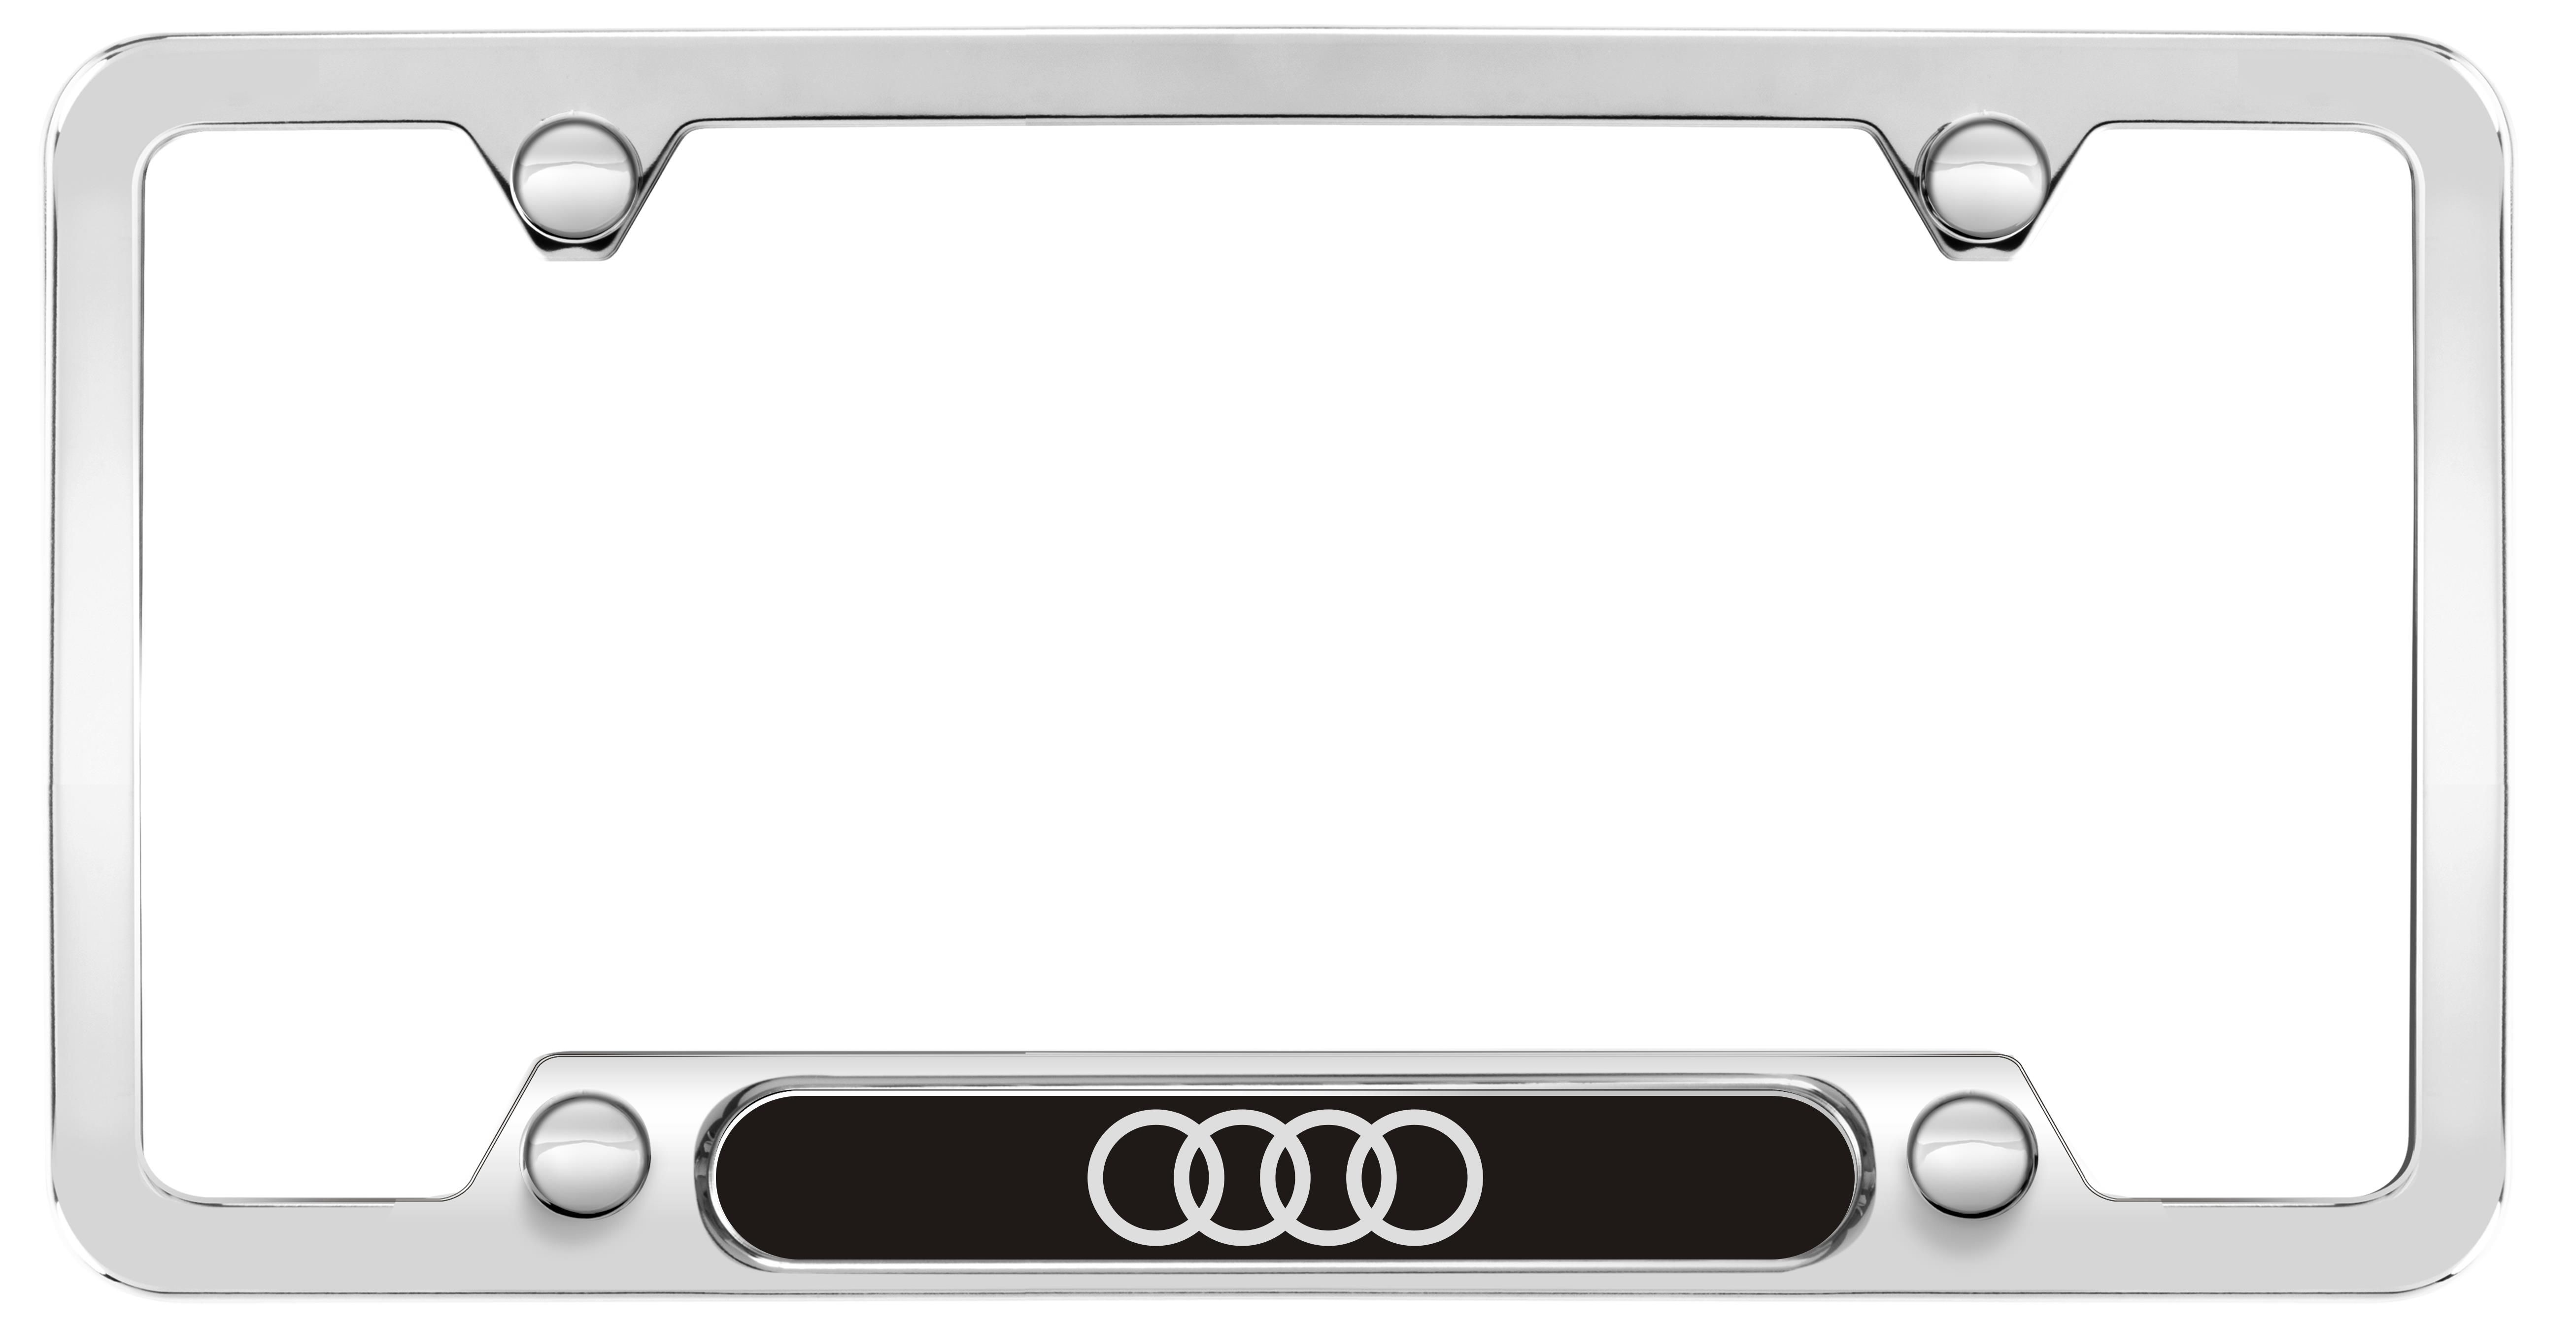 Zaw071801hz10 Audi Rings License Plate Frame Polished Stainless Steel Genuine Audi Accessory License Plate Frames Plate Frames License Plate